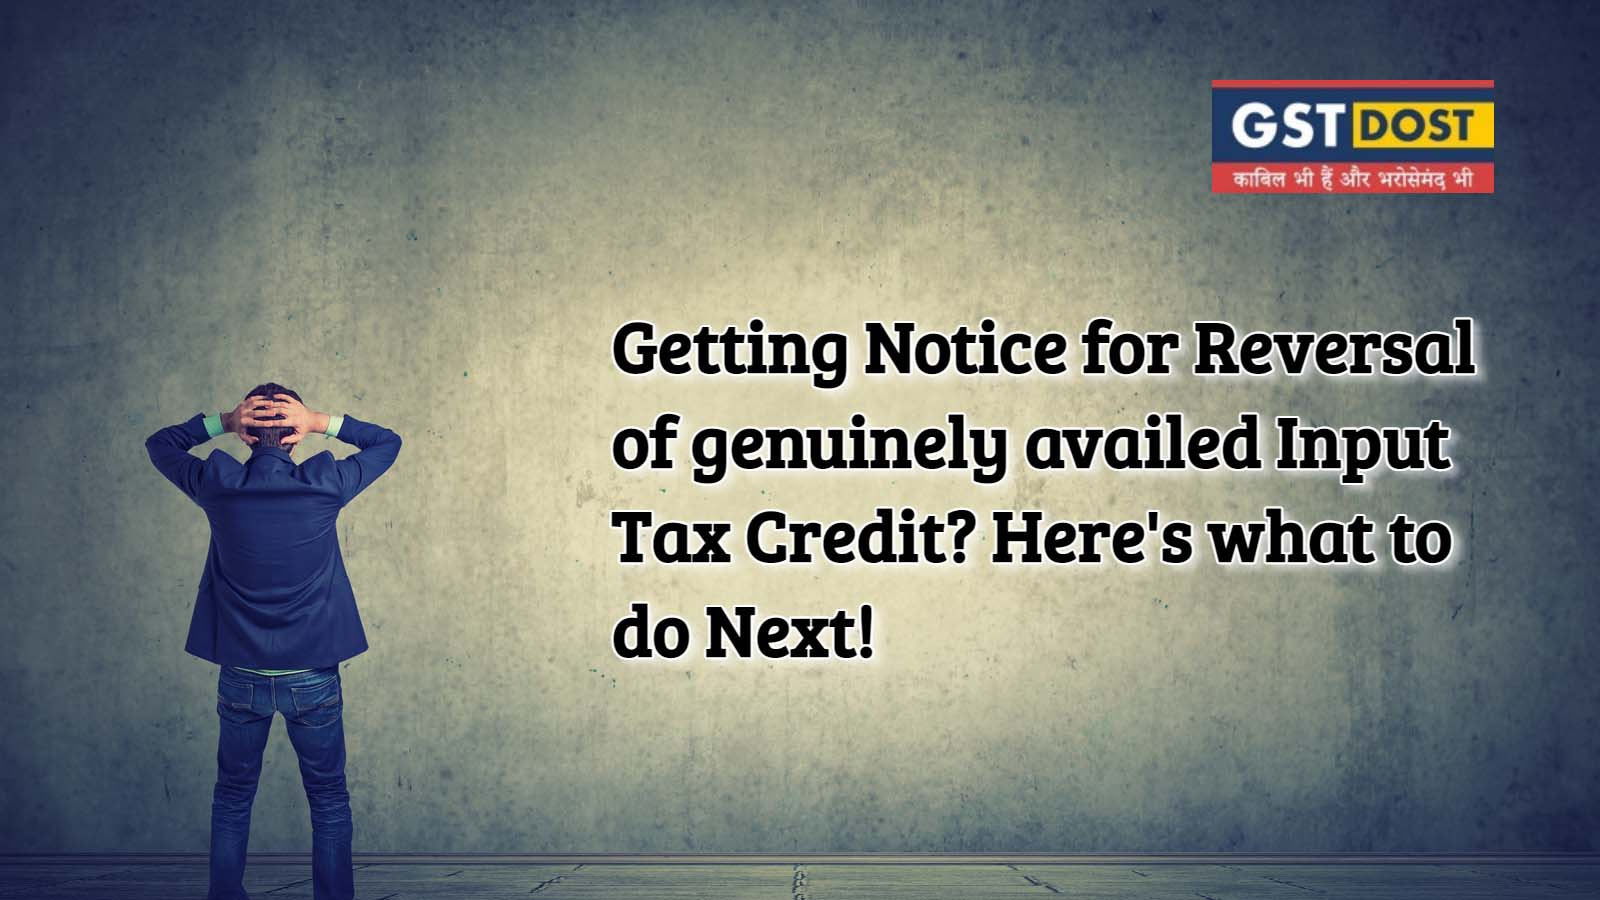 Getting Notice for Reversal of genuinely availed Input Tax Credit? Here's what to do Next!